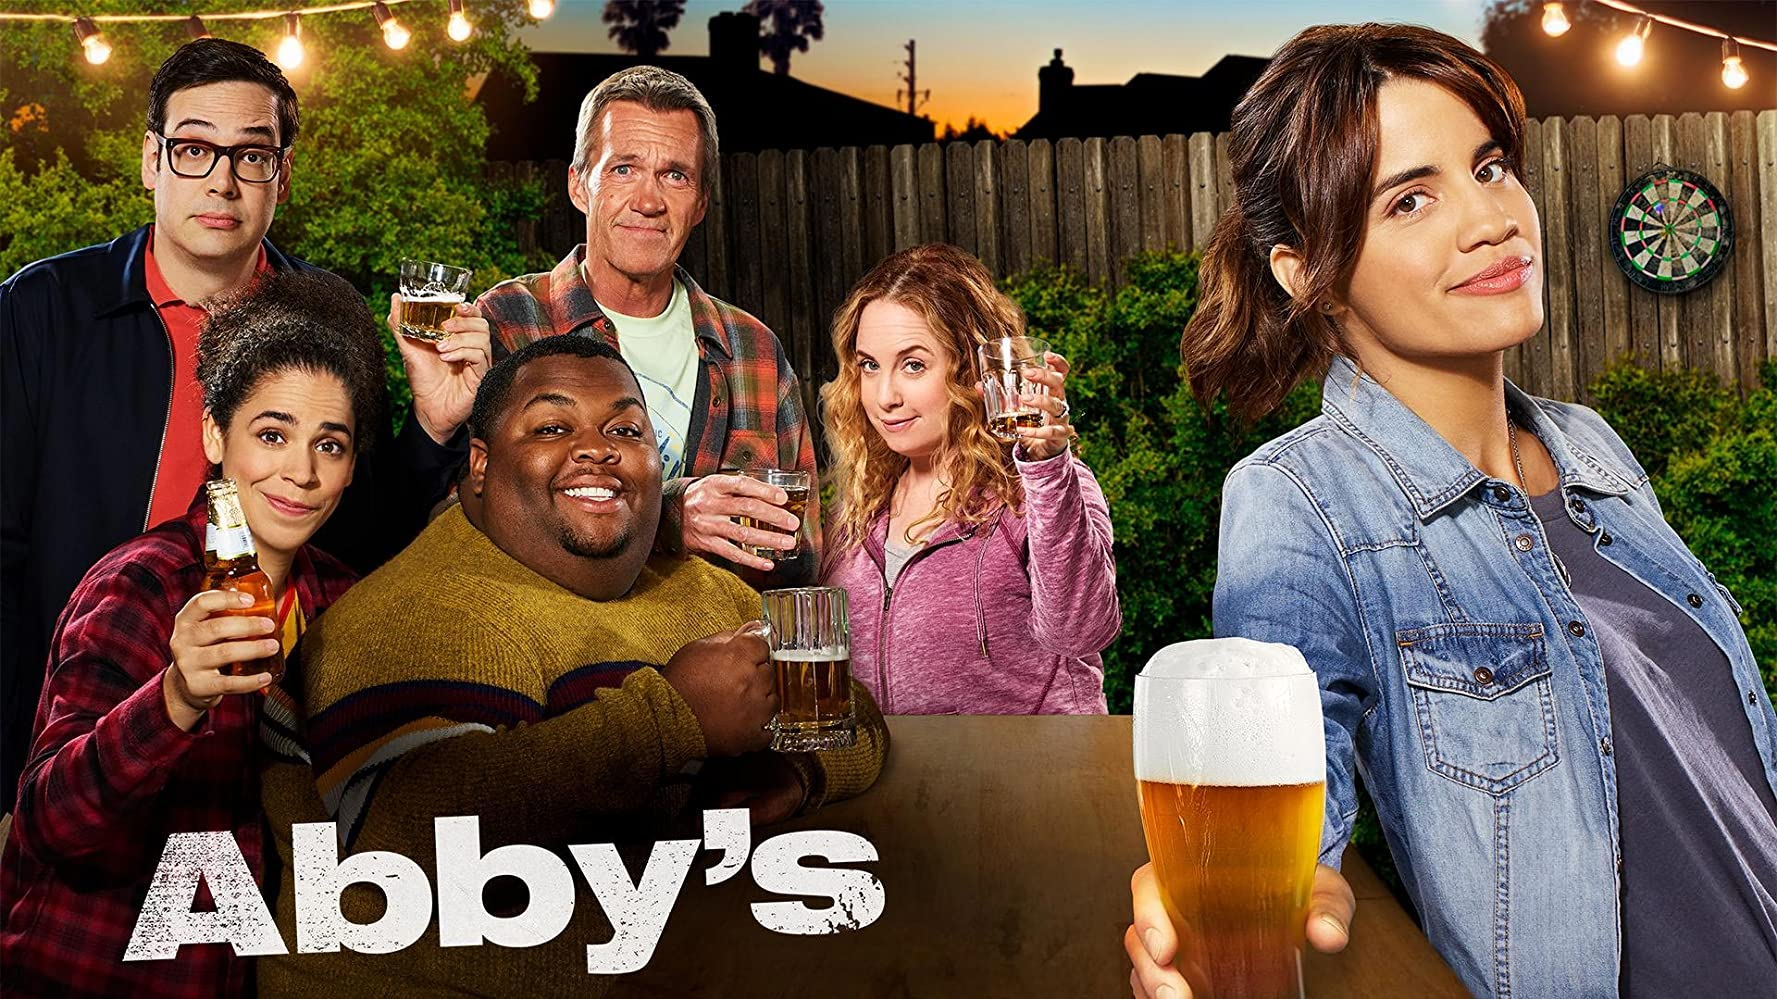 Jessica Chaffin, Neil Flynn, Nelson Franklin, Natalie Morales, Kimia Behpoornia, and Leonard Ouzts in Abby's (2019)